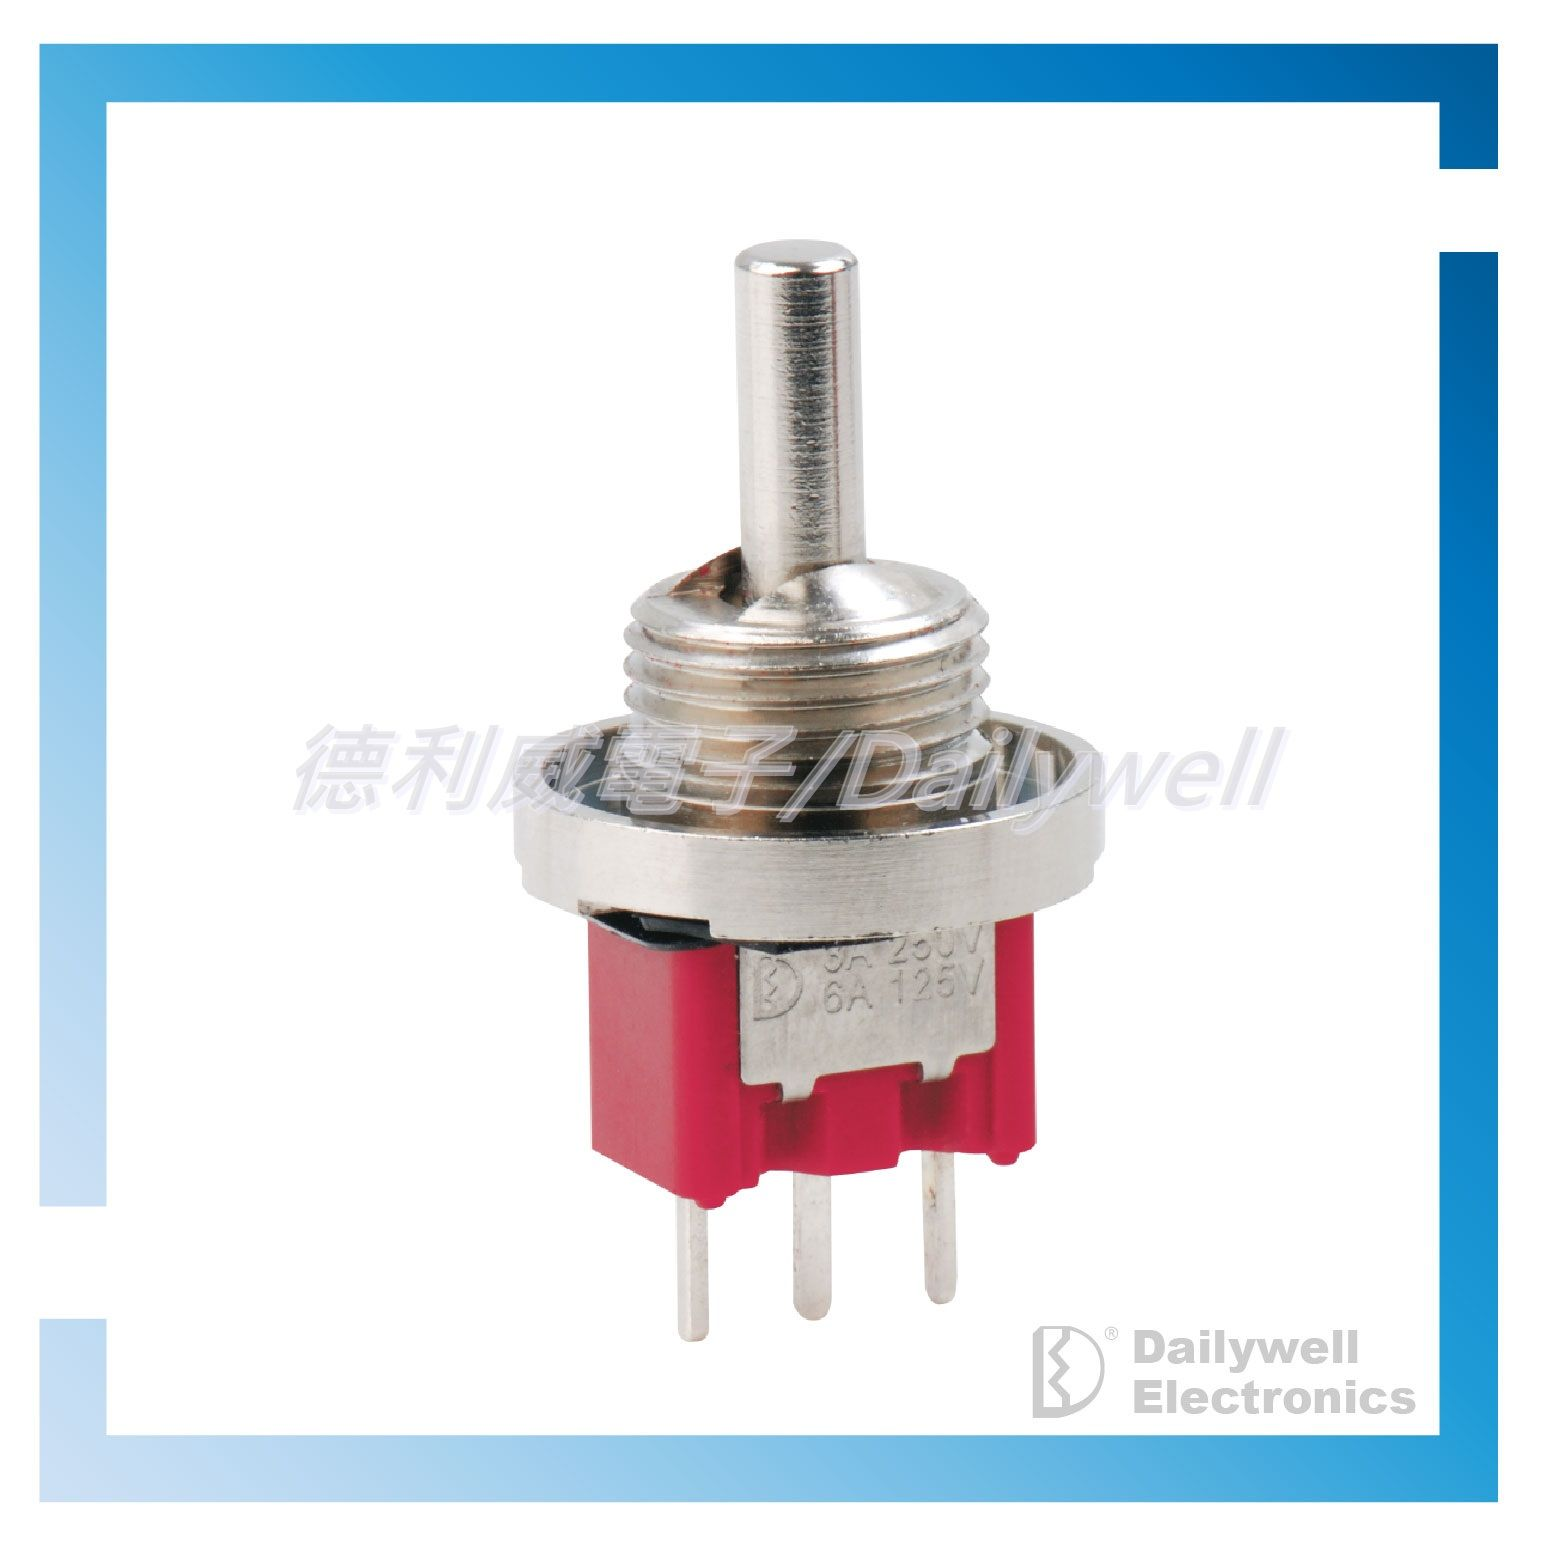 Miniature Toggle Switches Switch Supplier Dailywell